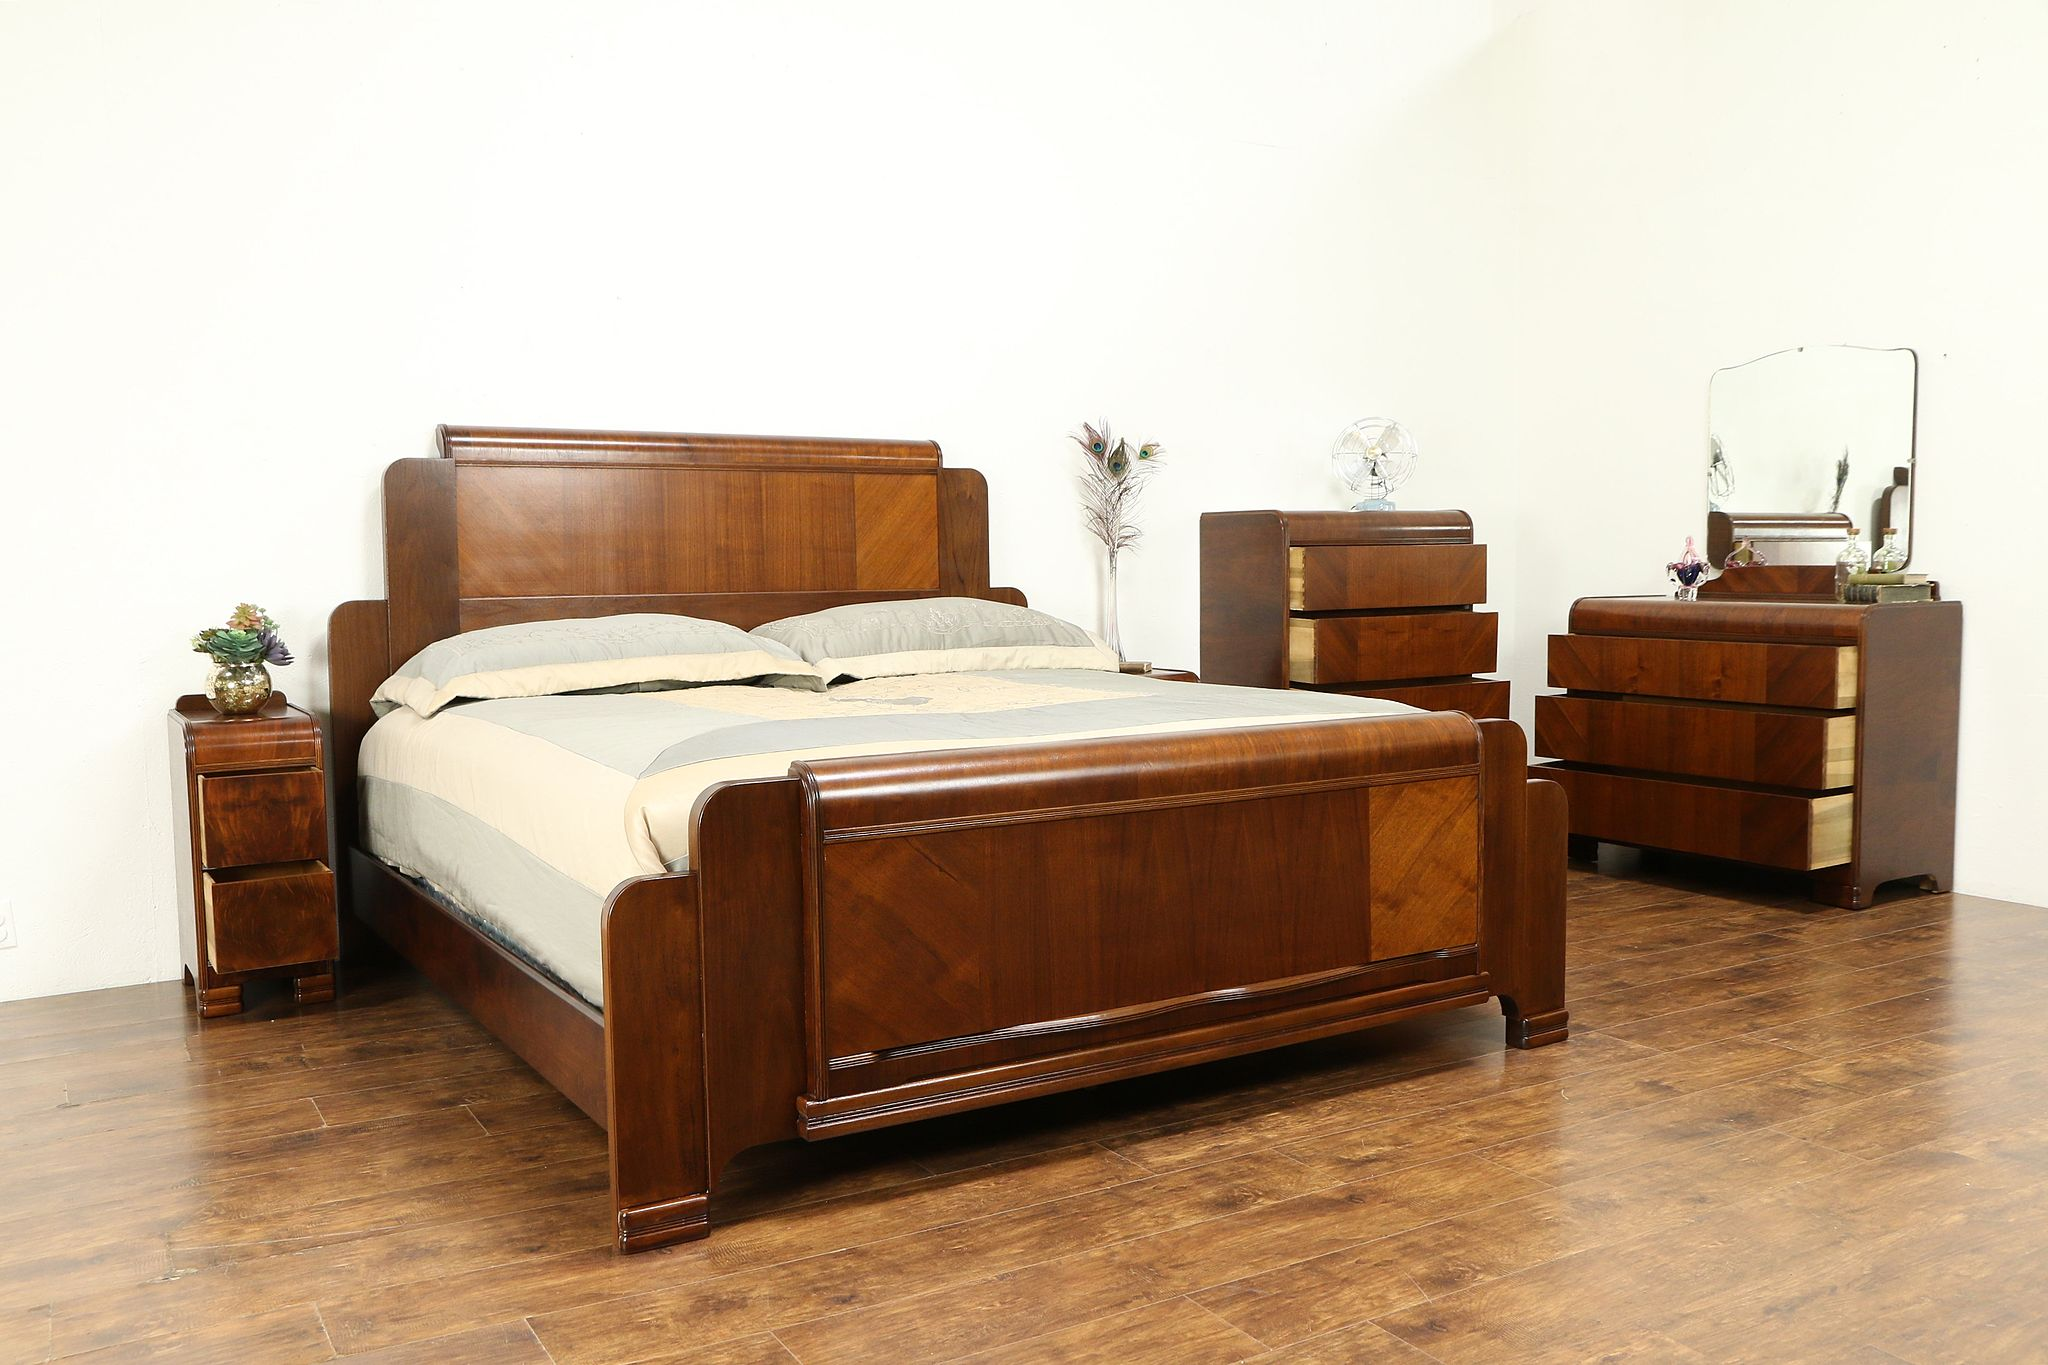 Sold Art Deco Waterfall Design 1940 Vintage 5 Pc Bedroom Set King Size Bed 31163 Harp Gallery Antiques Furniture